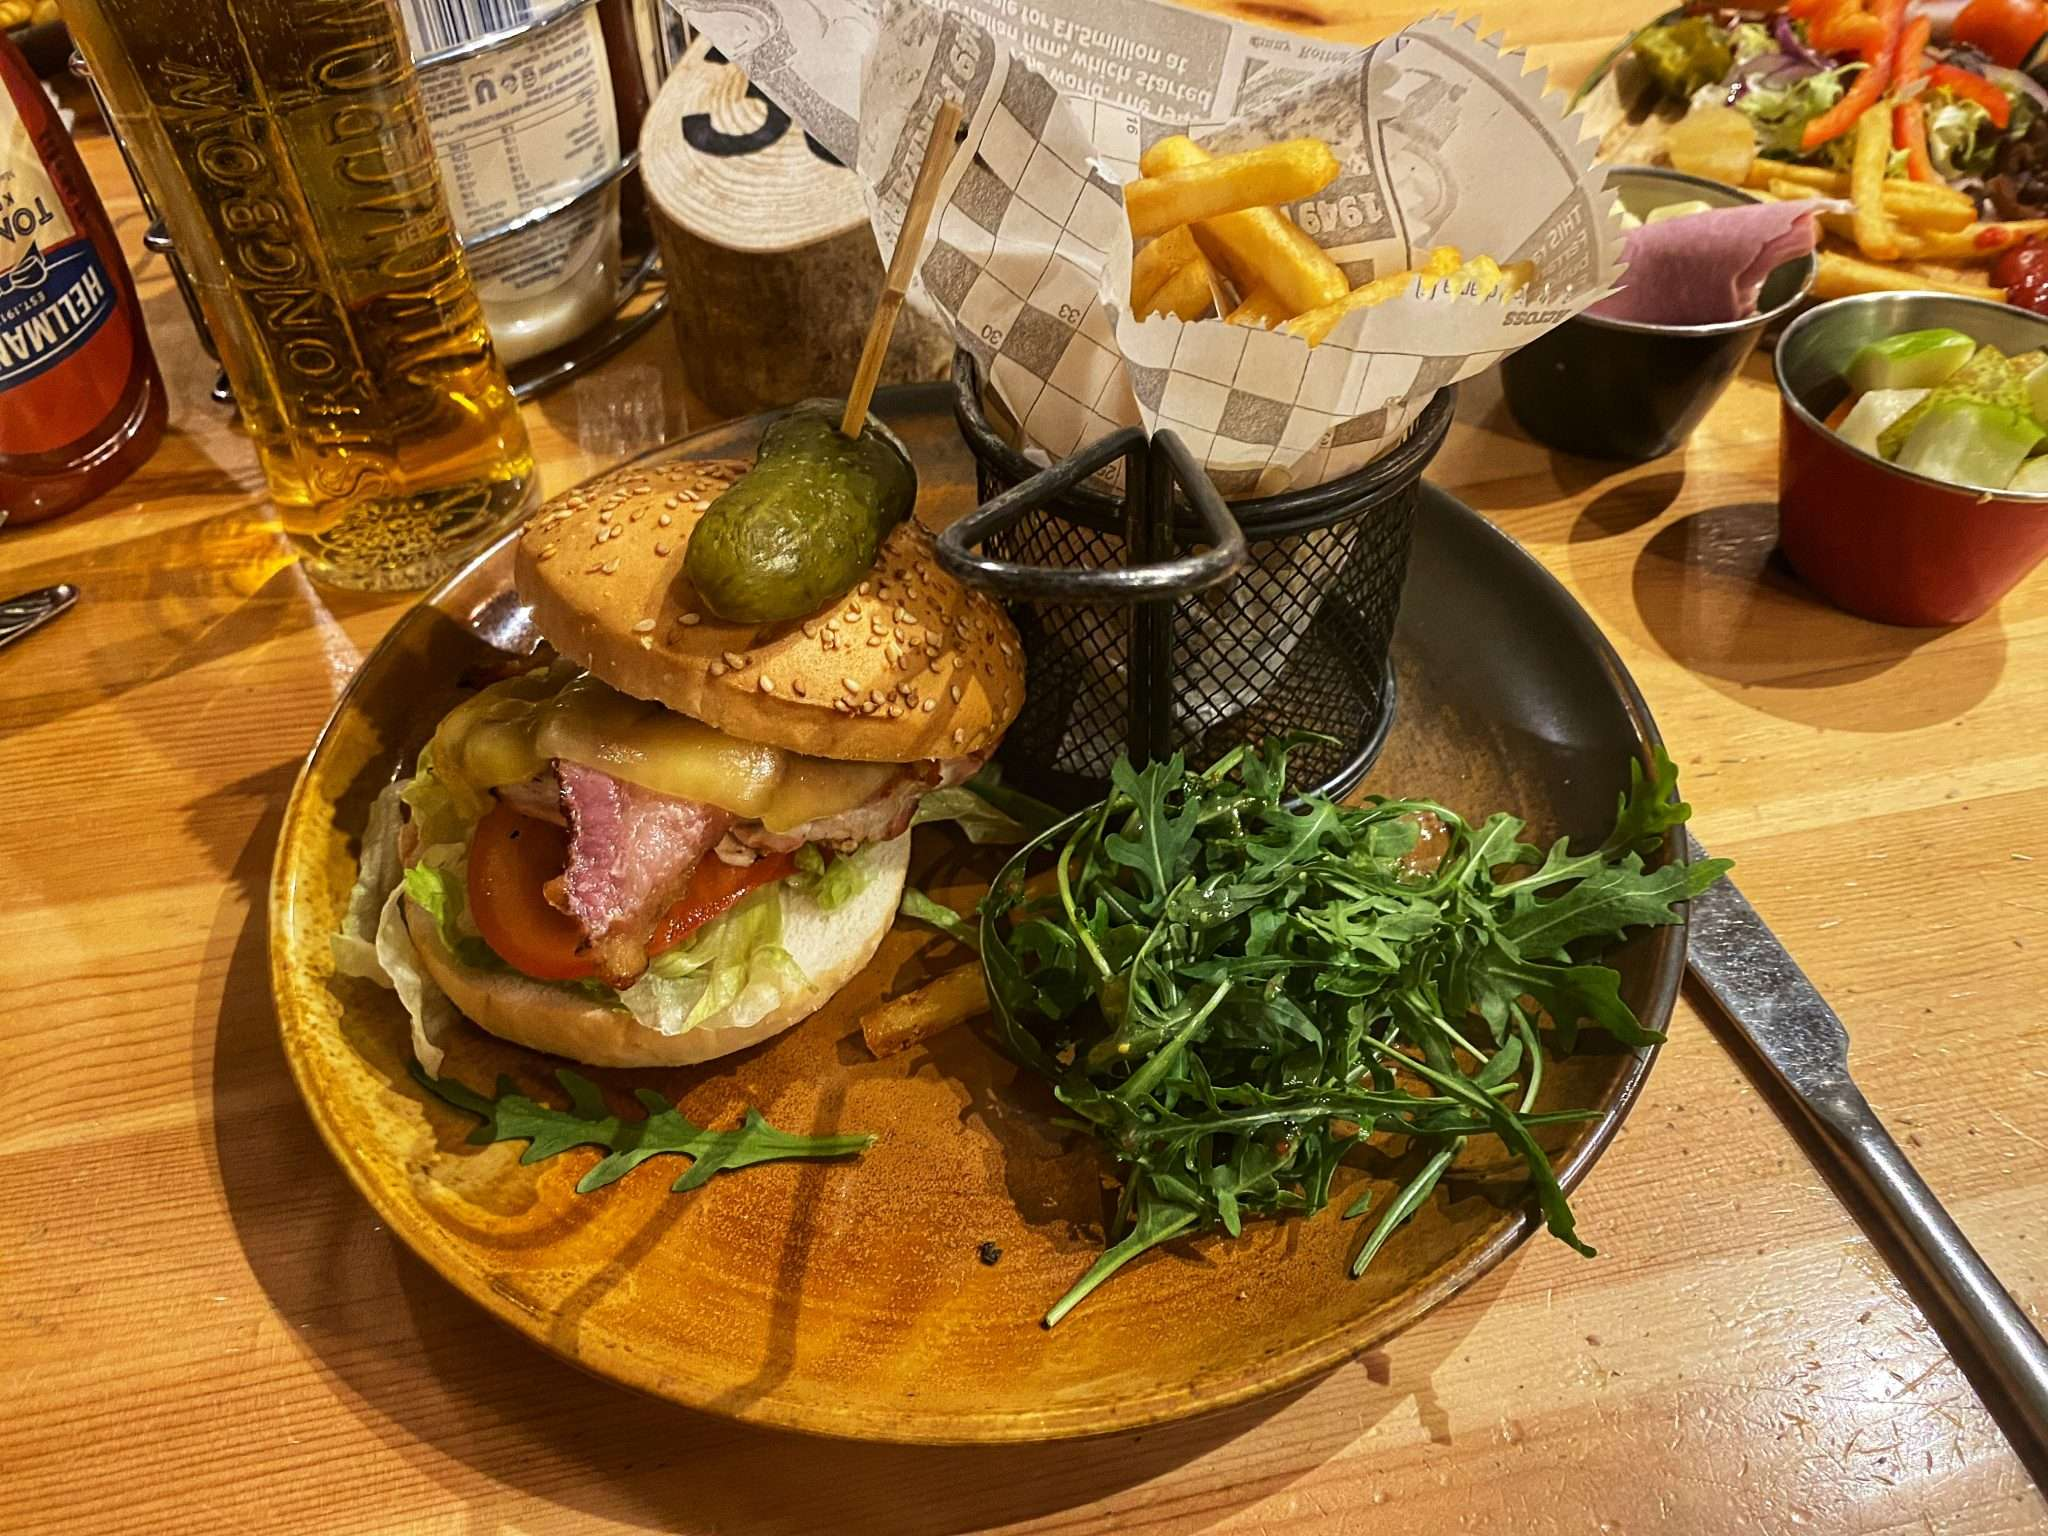 A chicken breast with bacon and cheese in a gluten free bun with a basket of fries and salad.